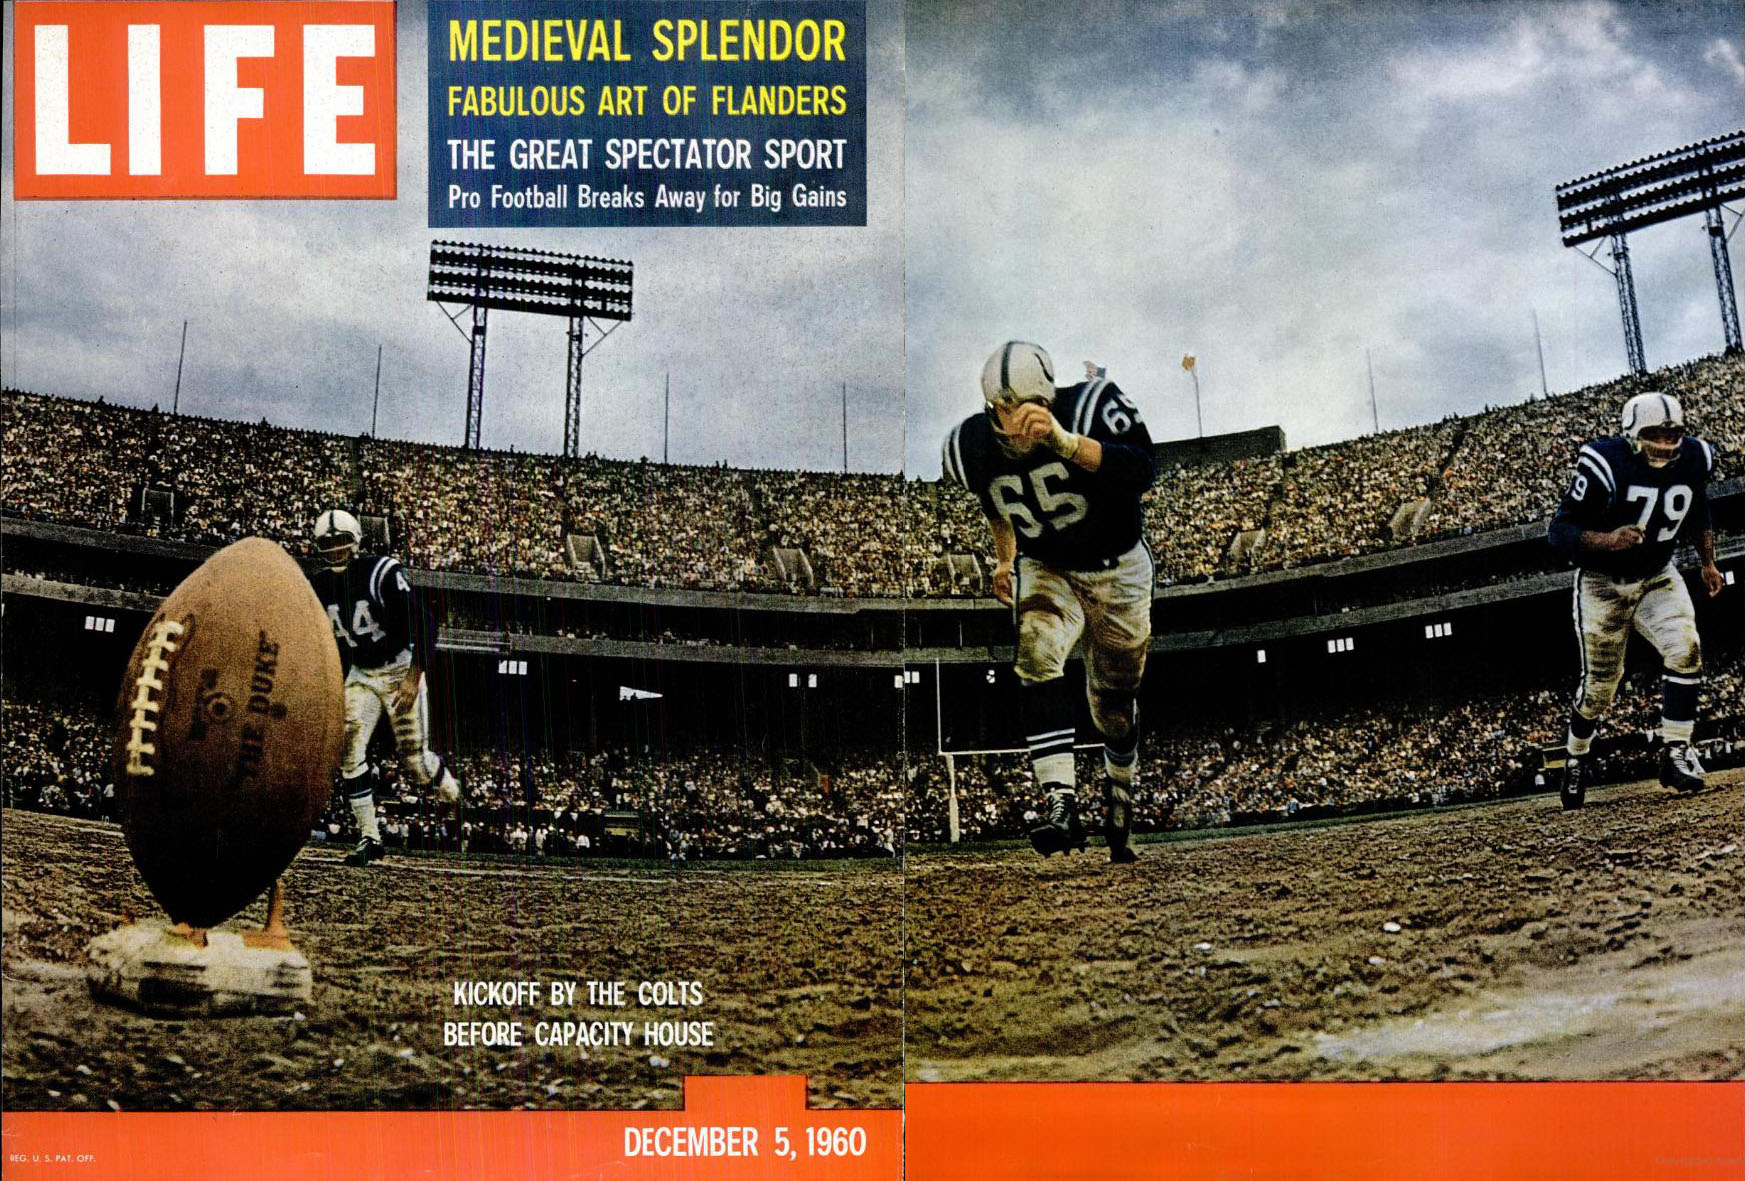 Life Magazine (NFL 1960) cover - December 5, 1960